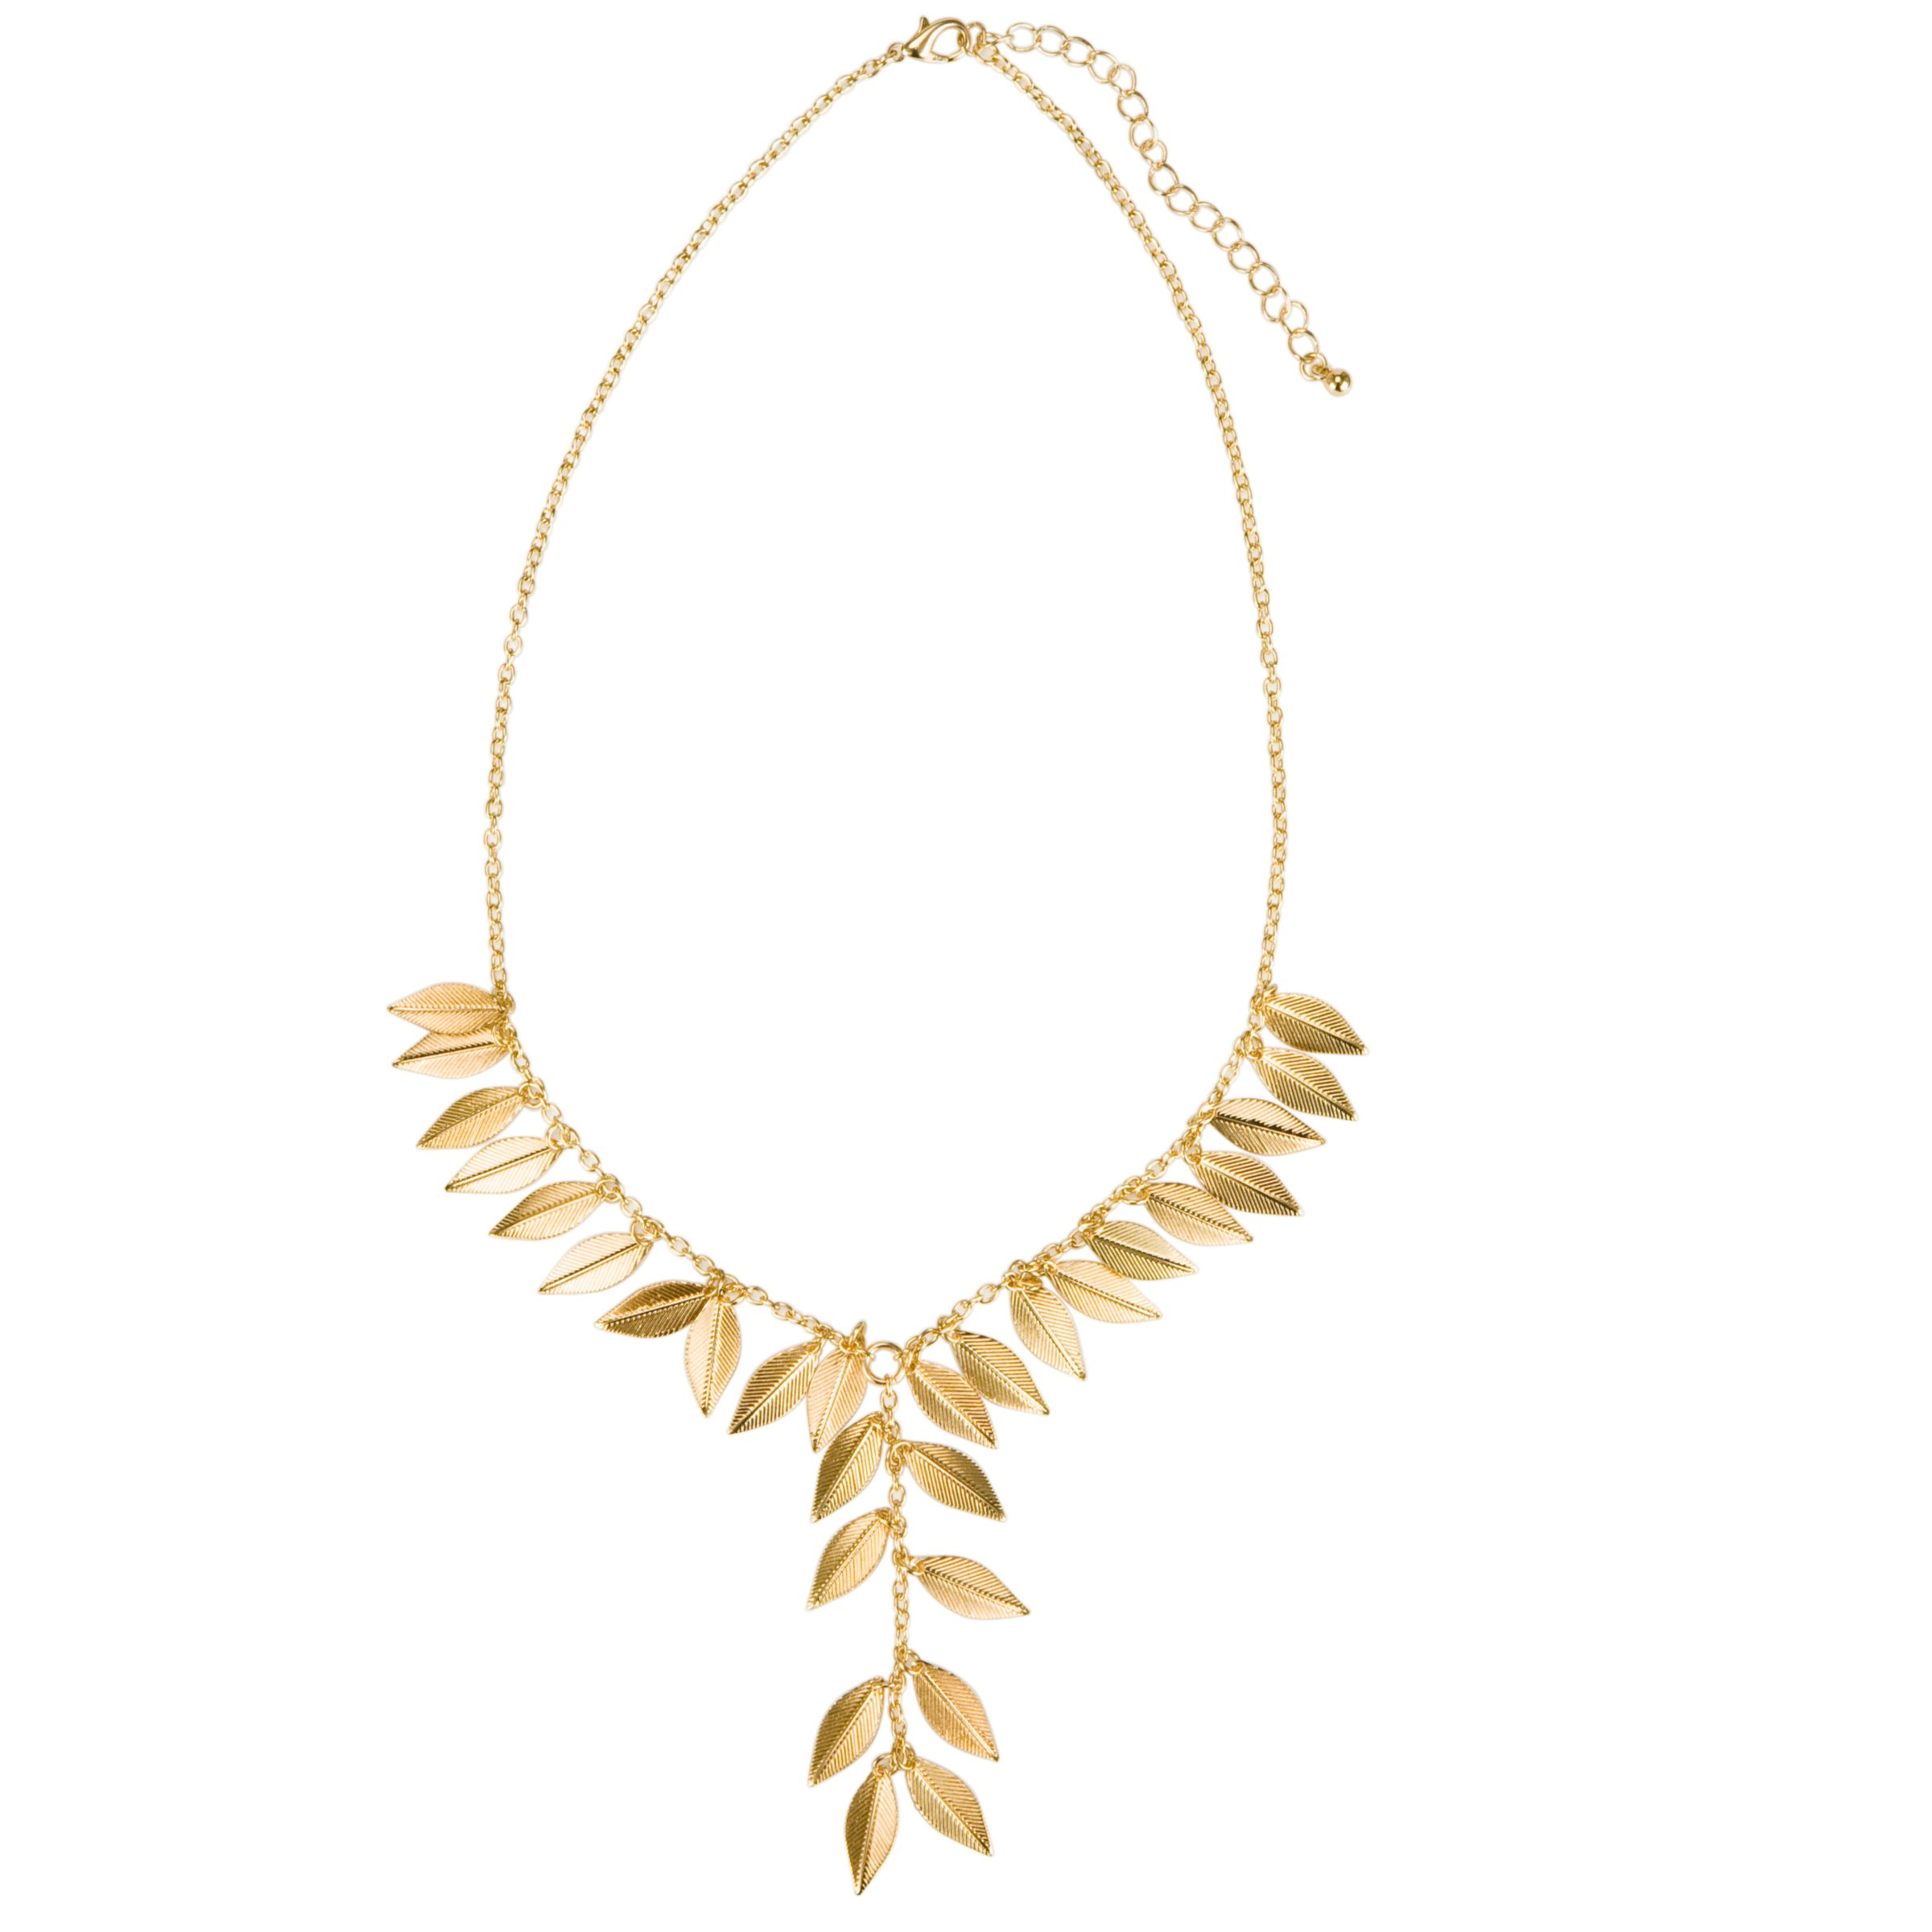 John Lewis Nordic Gold Coloured Leaf Necklace